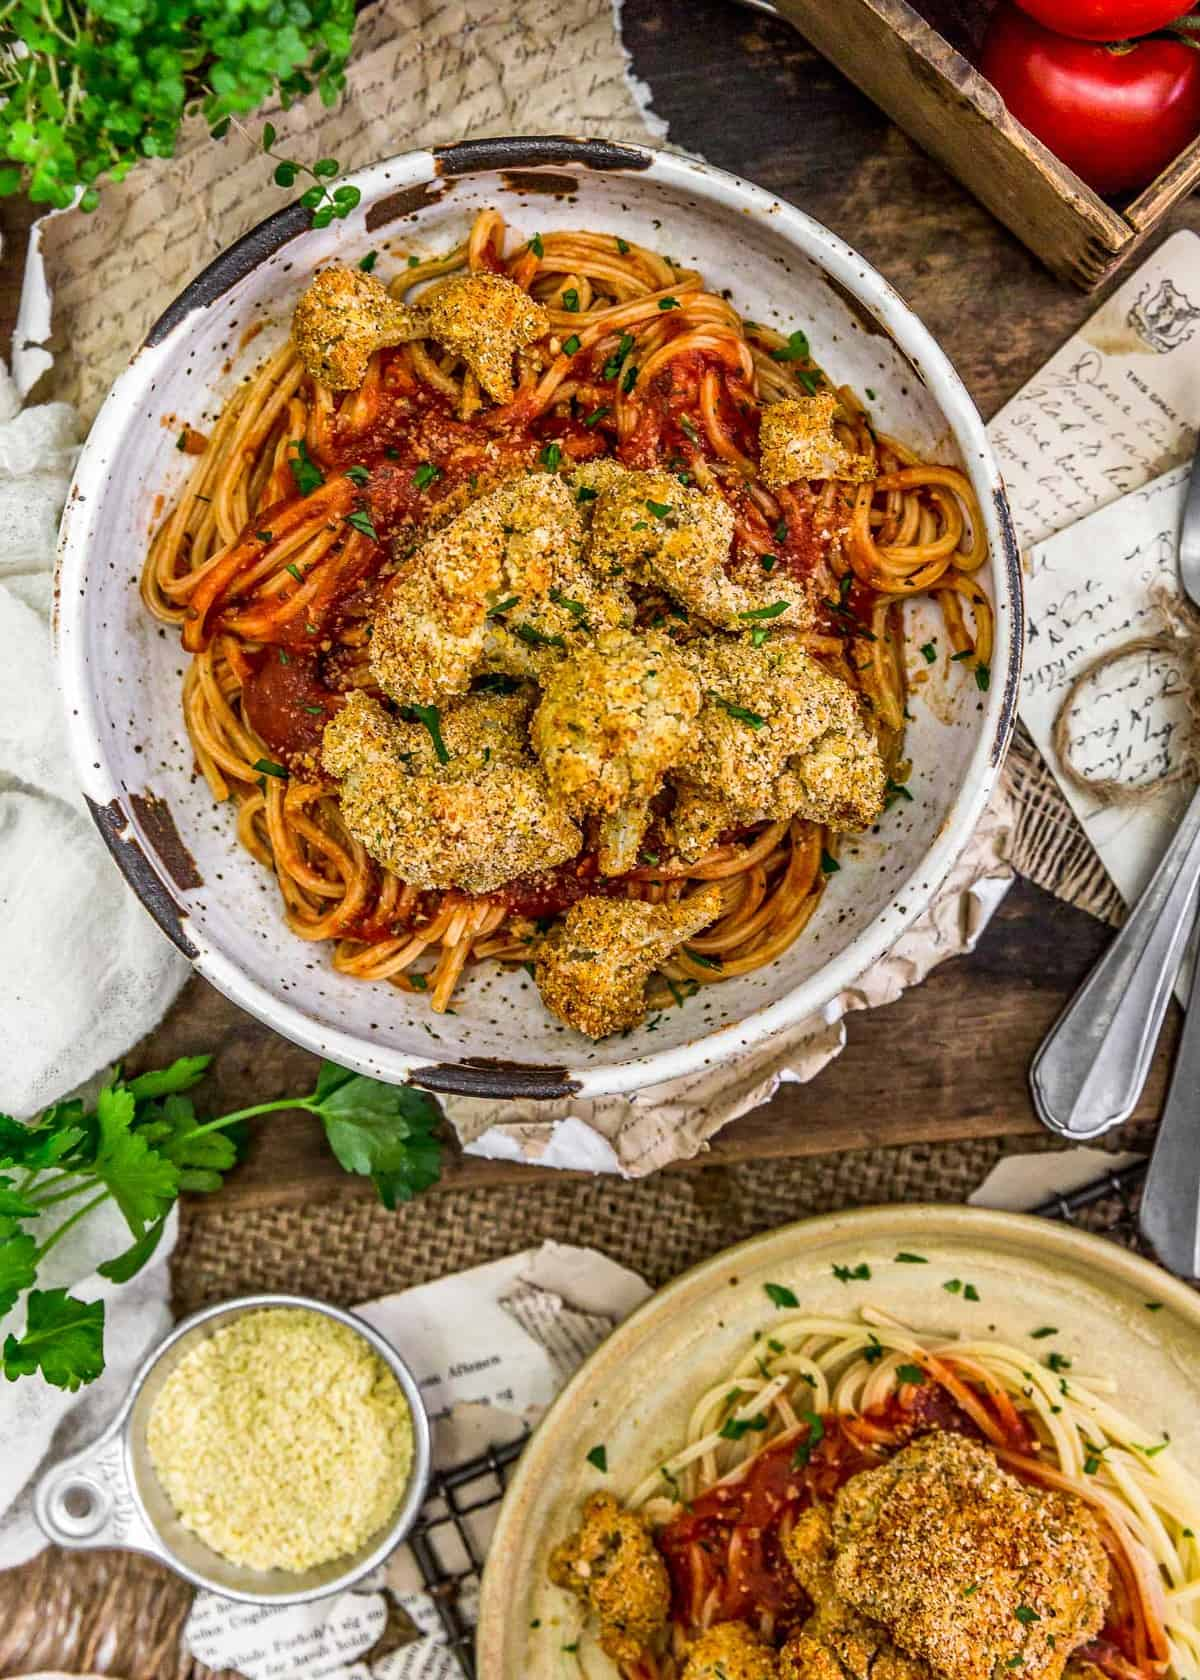 Served Baked Italian Cauliflower with spaghetti